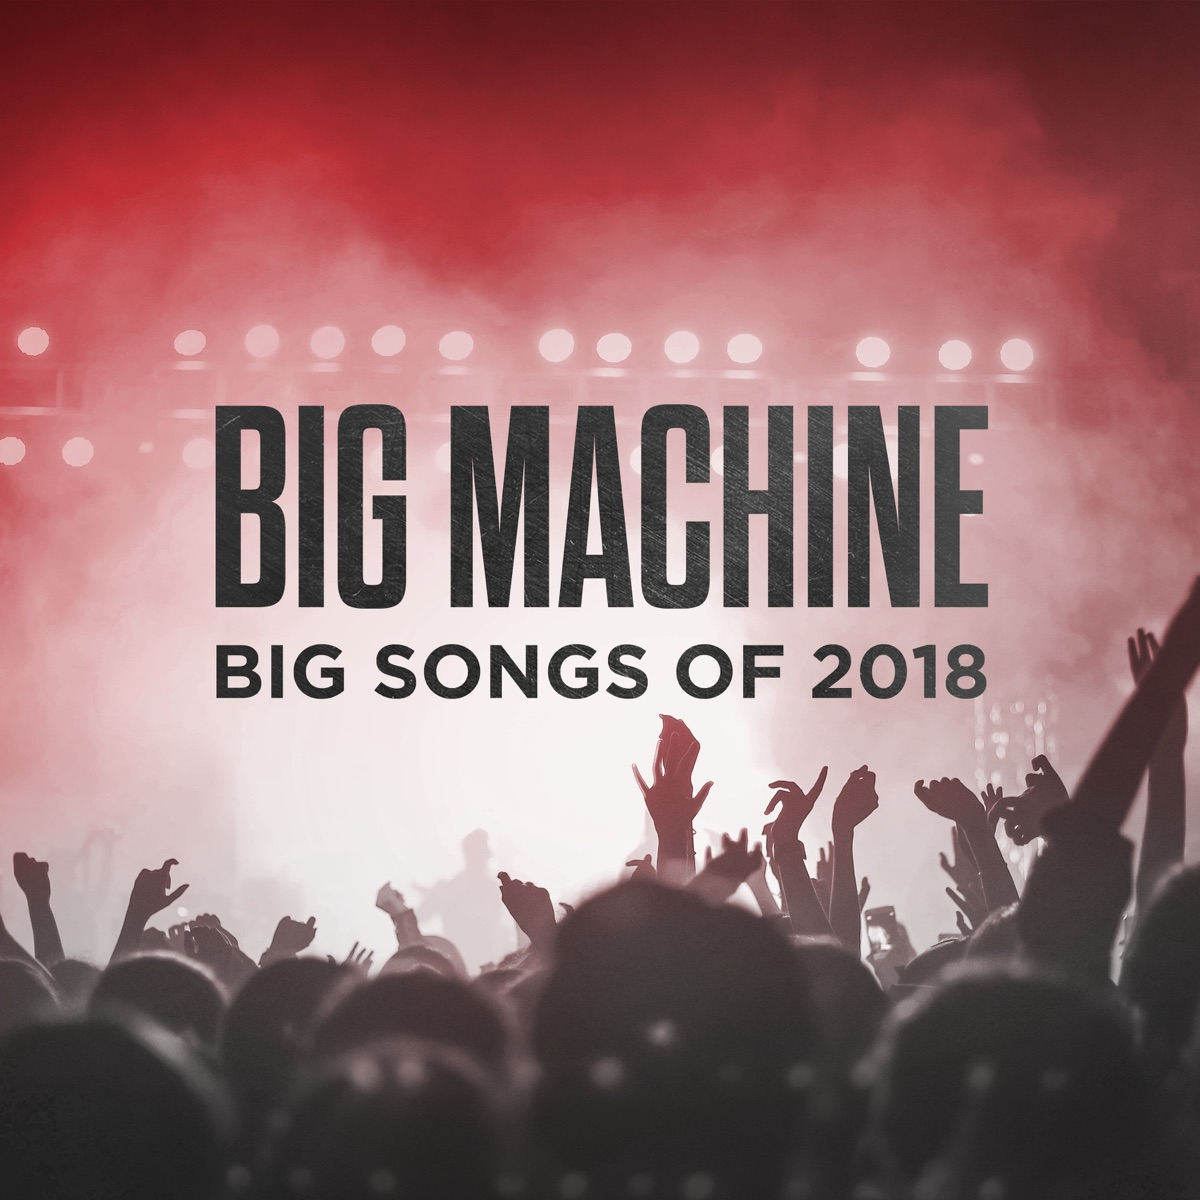 Big Machine Big Songs Of 2018 Various Artists CD cover